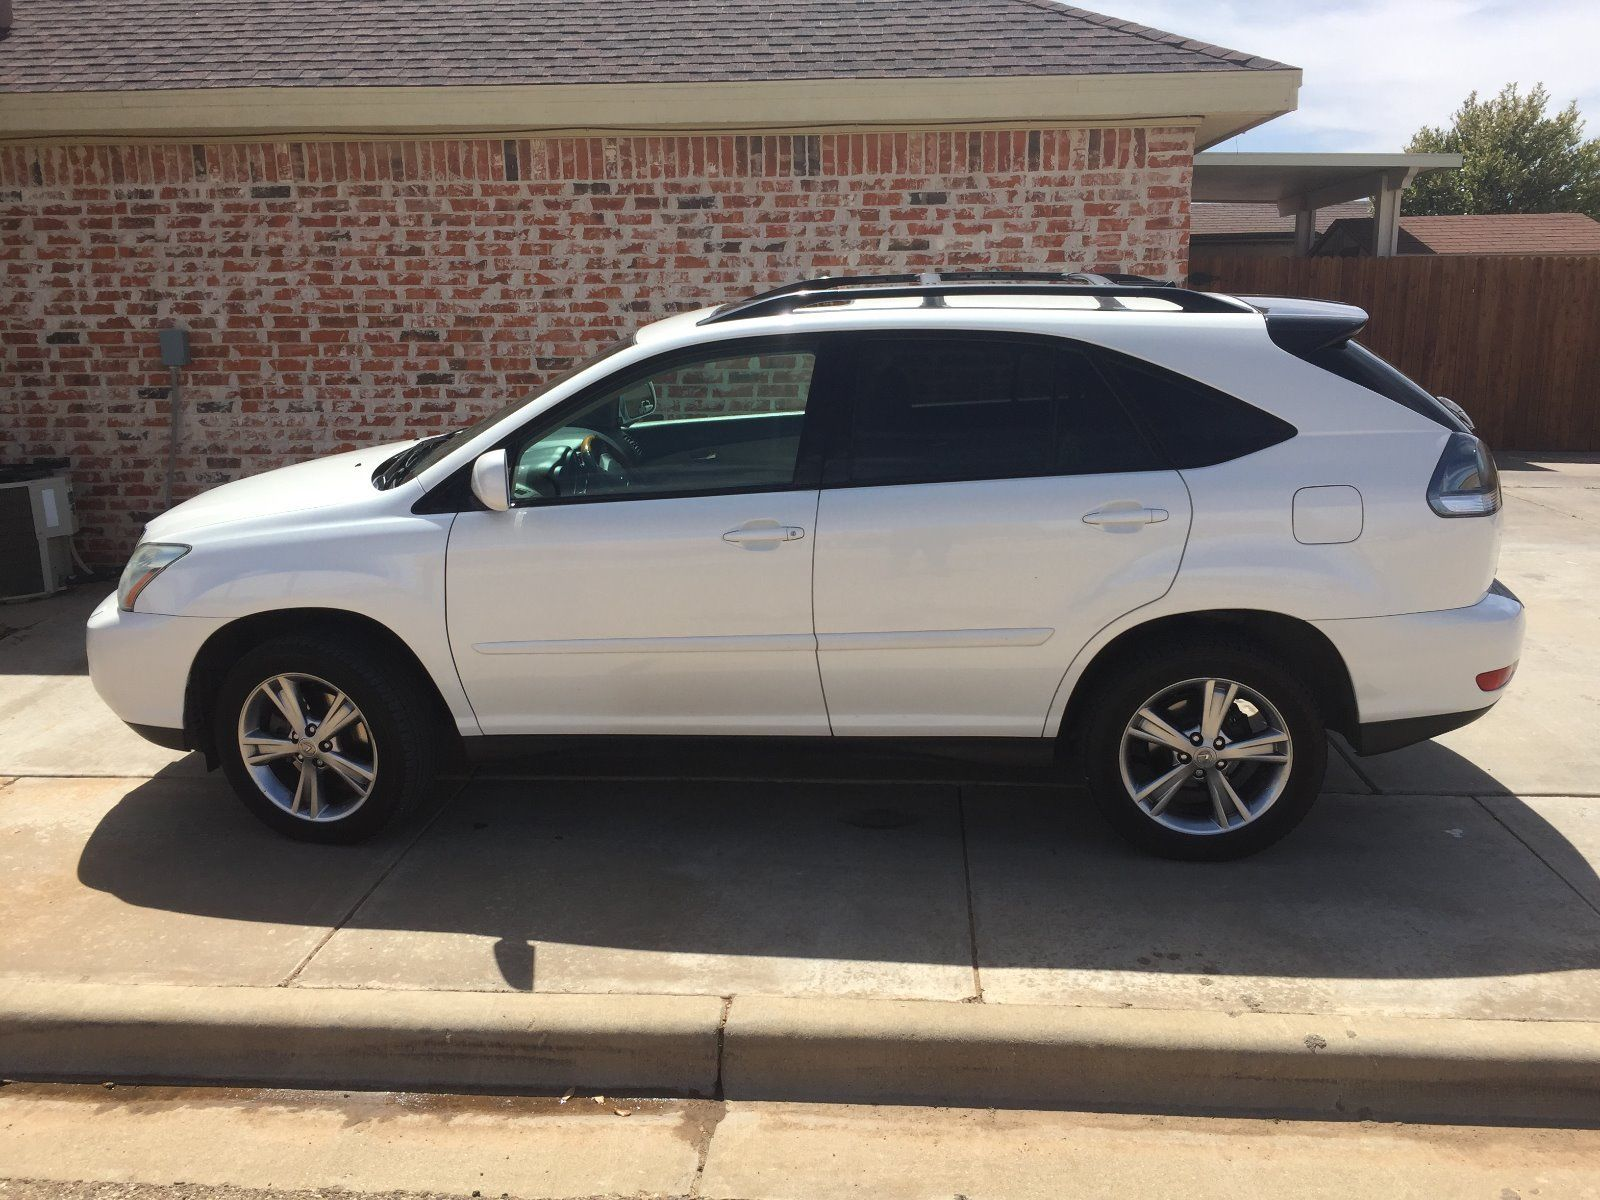 Awesome 2006 Lexus Rx 400h 168563 Miles Suv 3 3l V6 Cylinder Engine Automatic 2018 2019